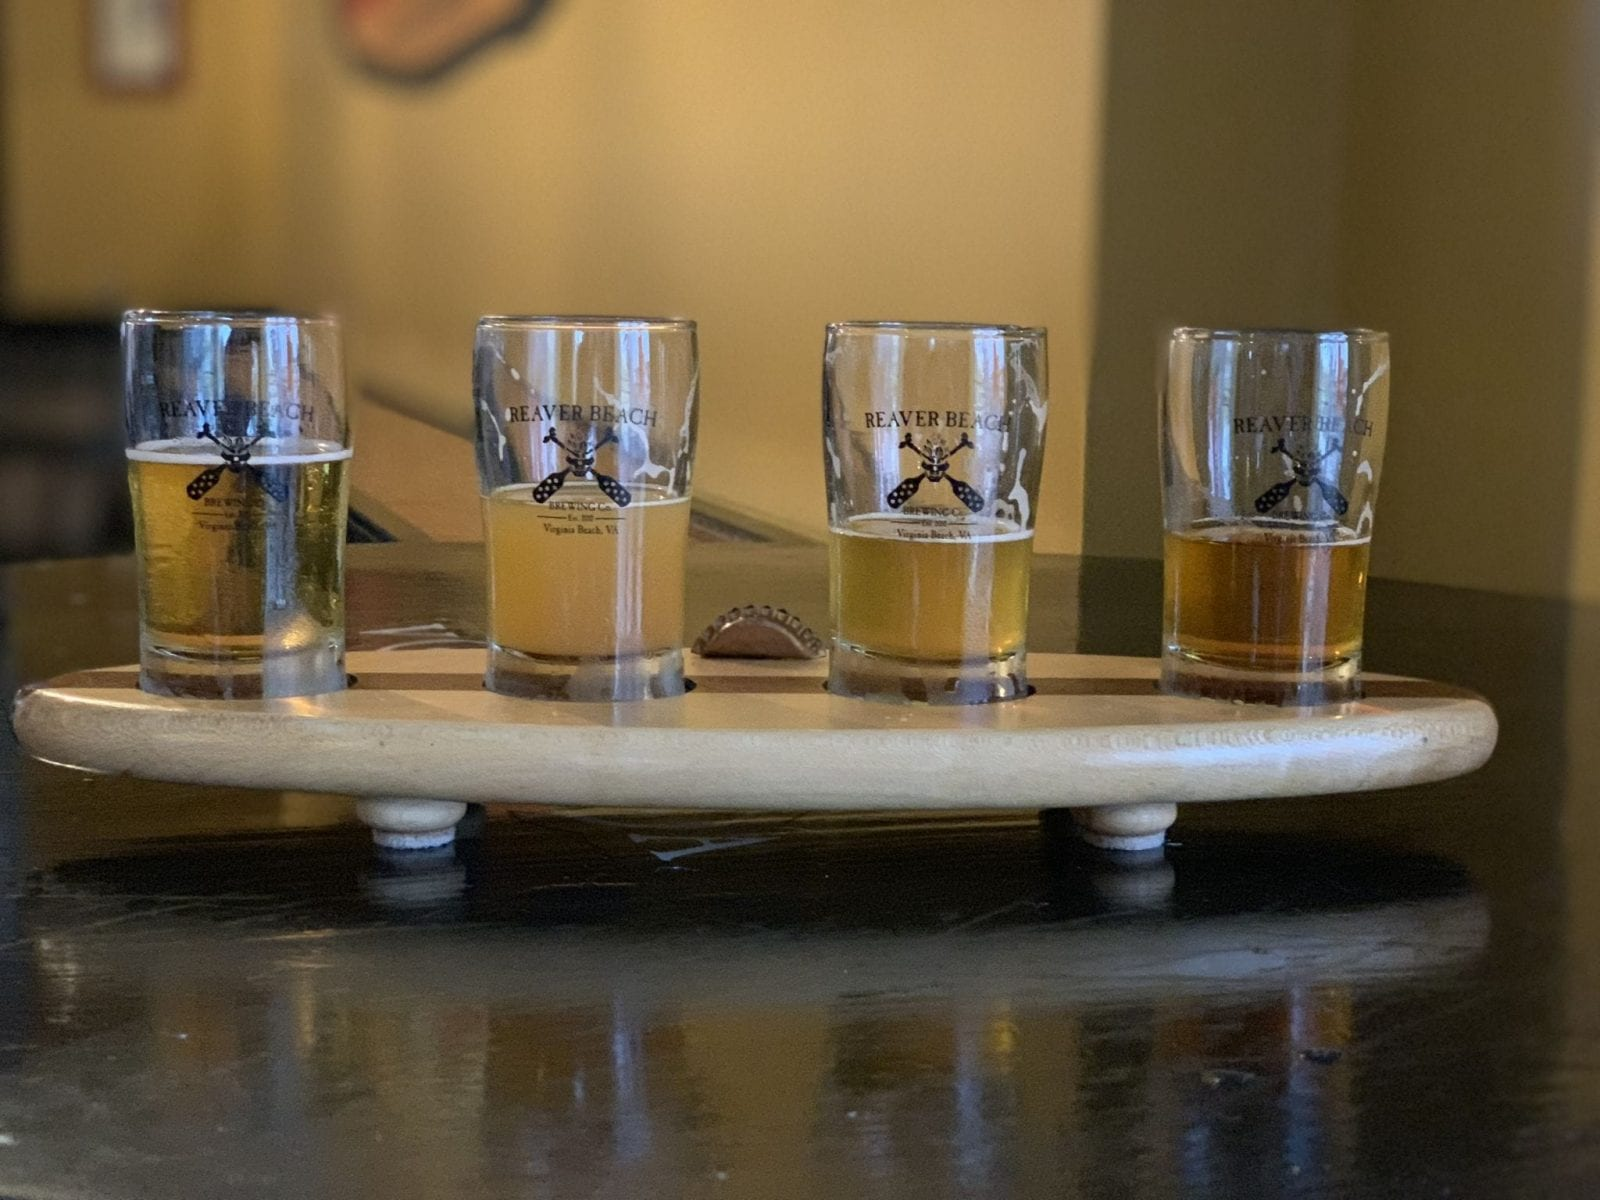 This is a close up of the Reaver Beach IPA flight in Virginia Beach.